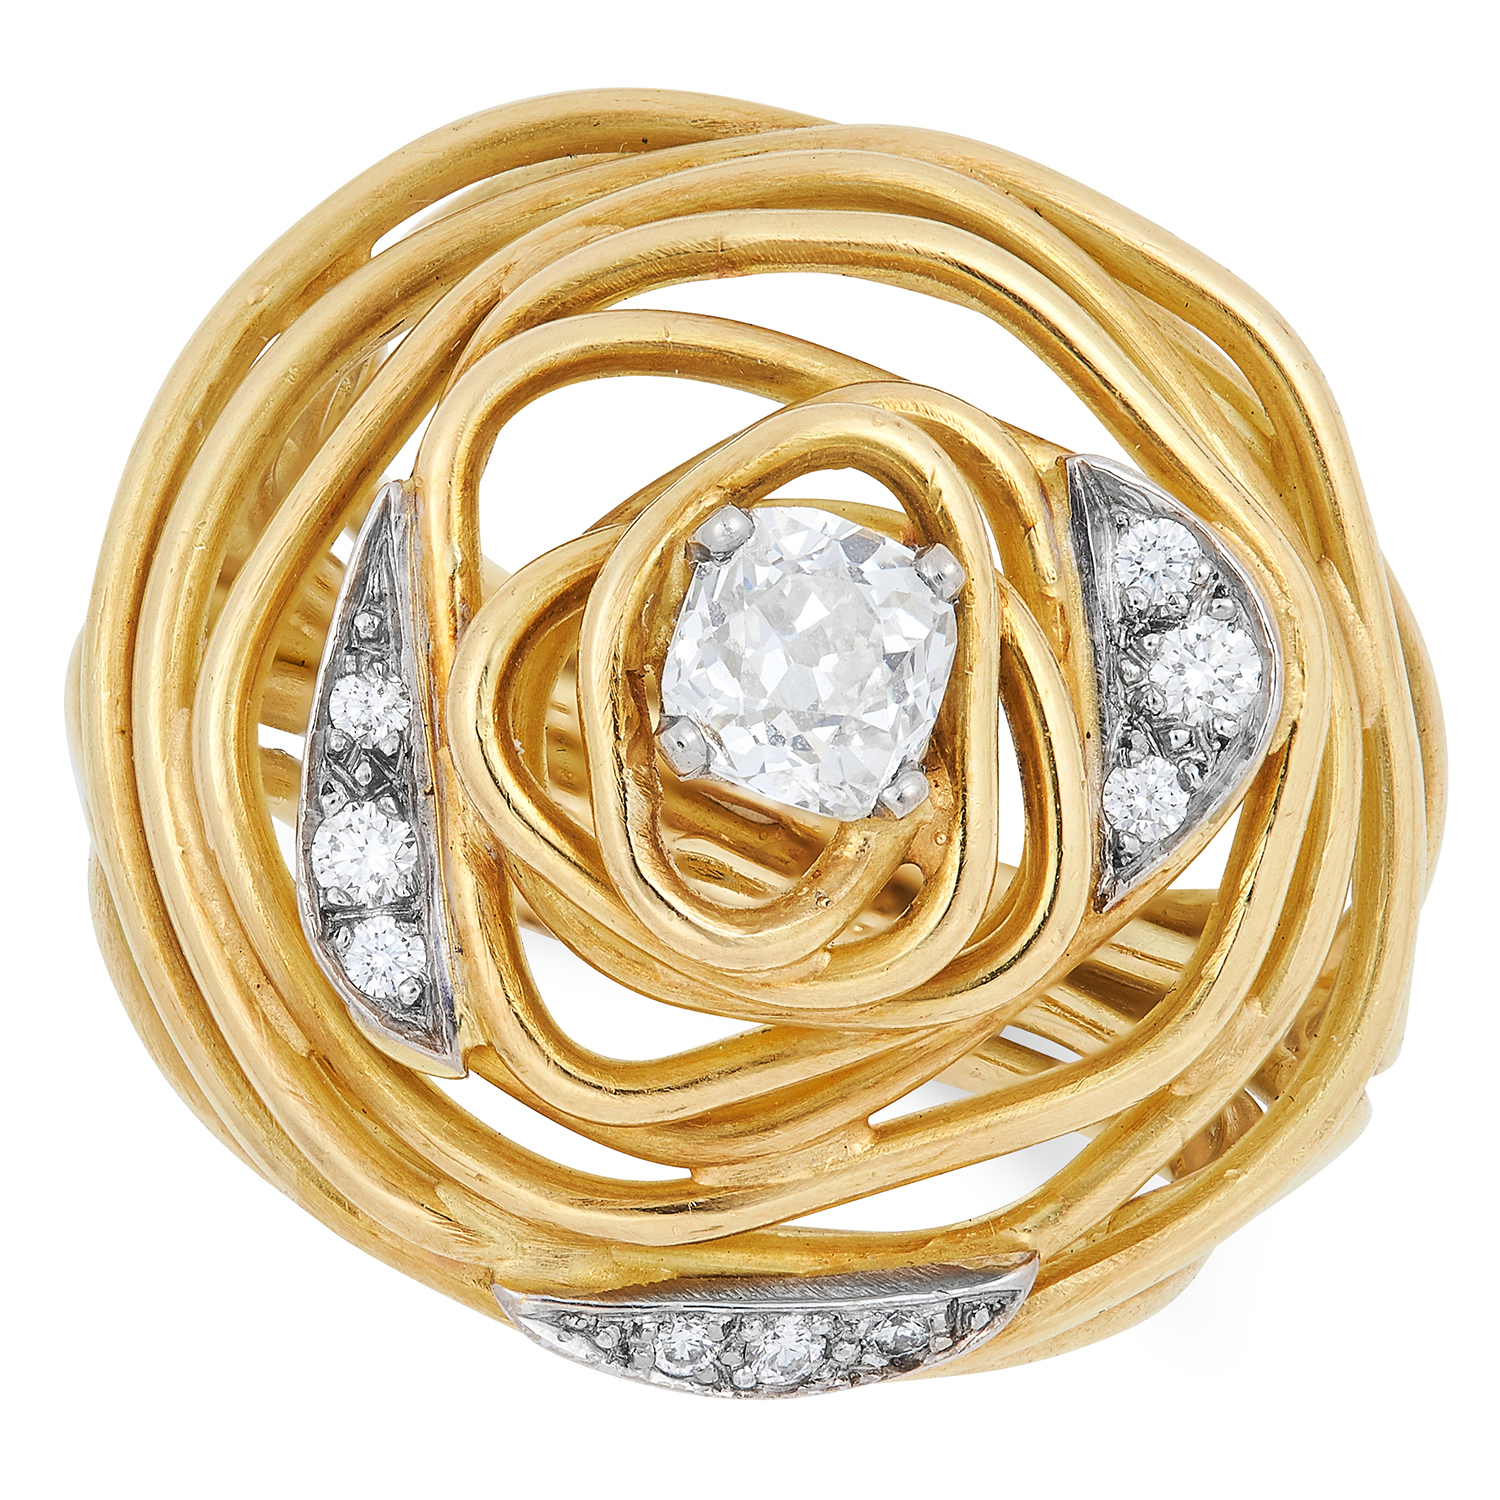 A DIAMOND RING, ANDREW GRIMA, CIRCA 1970 open wirework design set with a principal old cut diamond